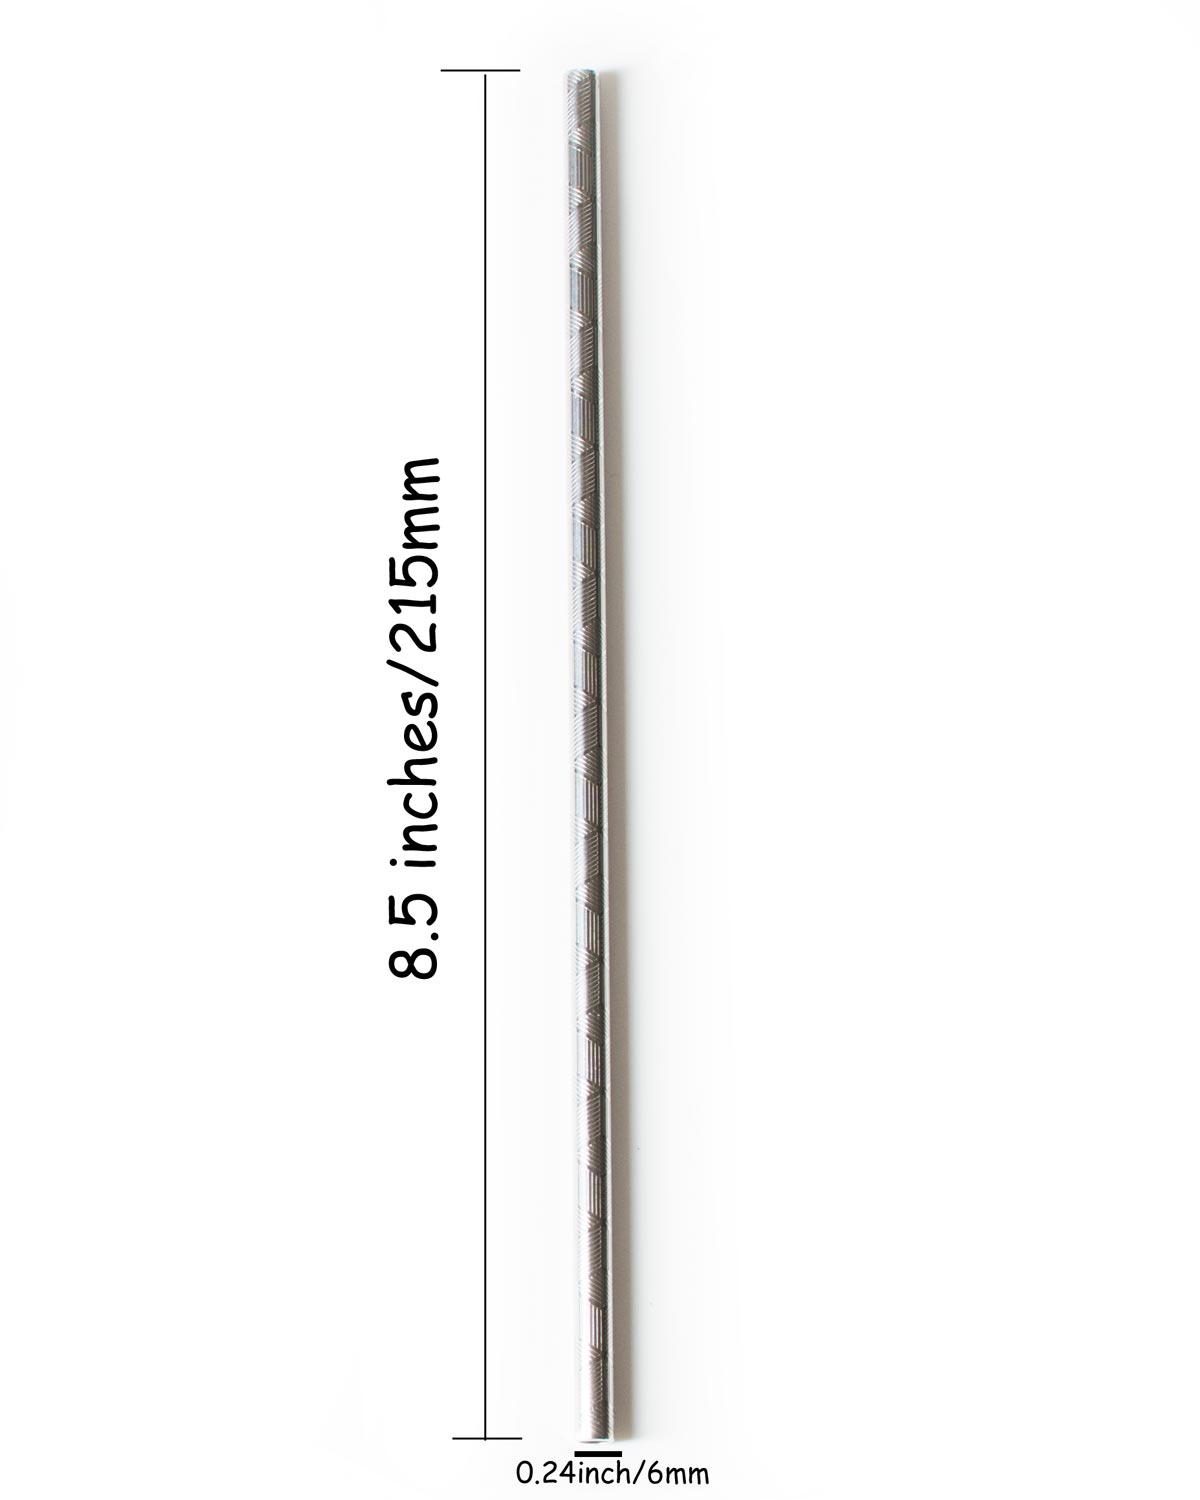 Embossed Stainless Steel Straw Dimension